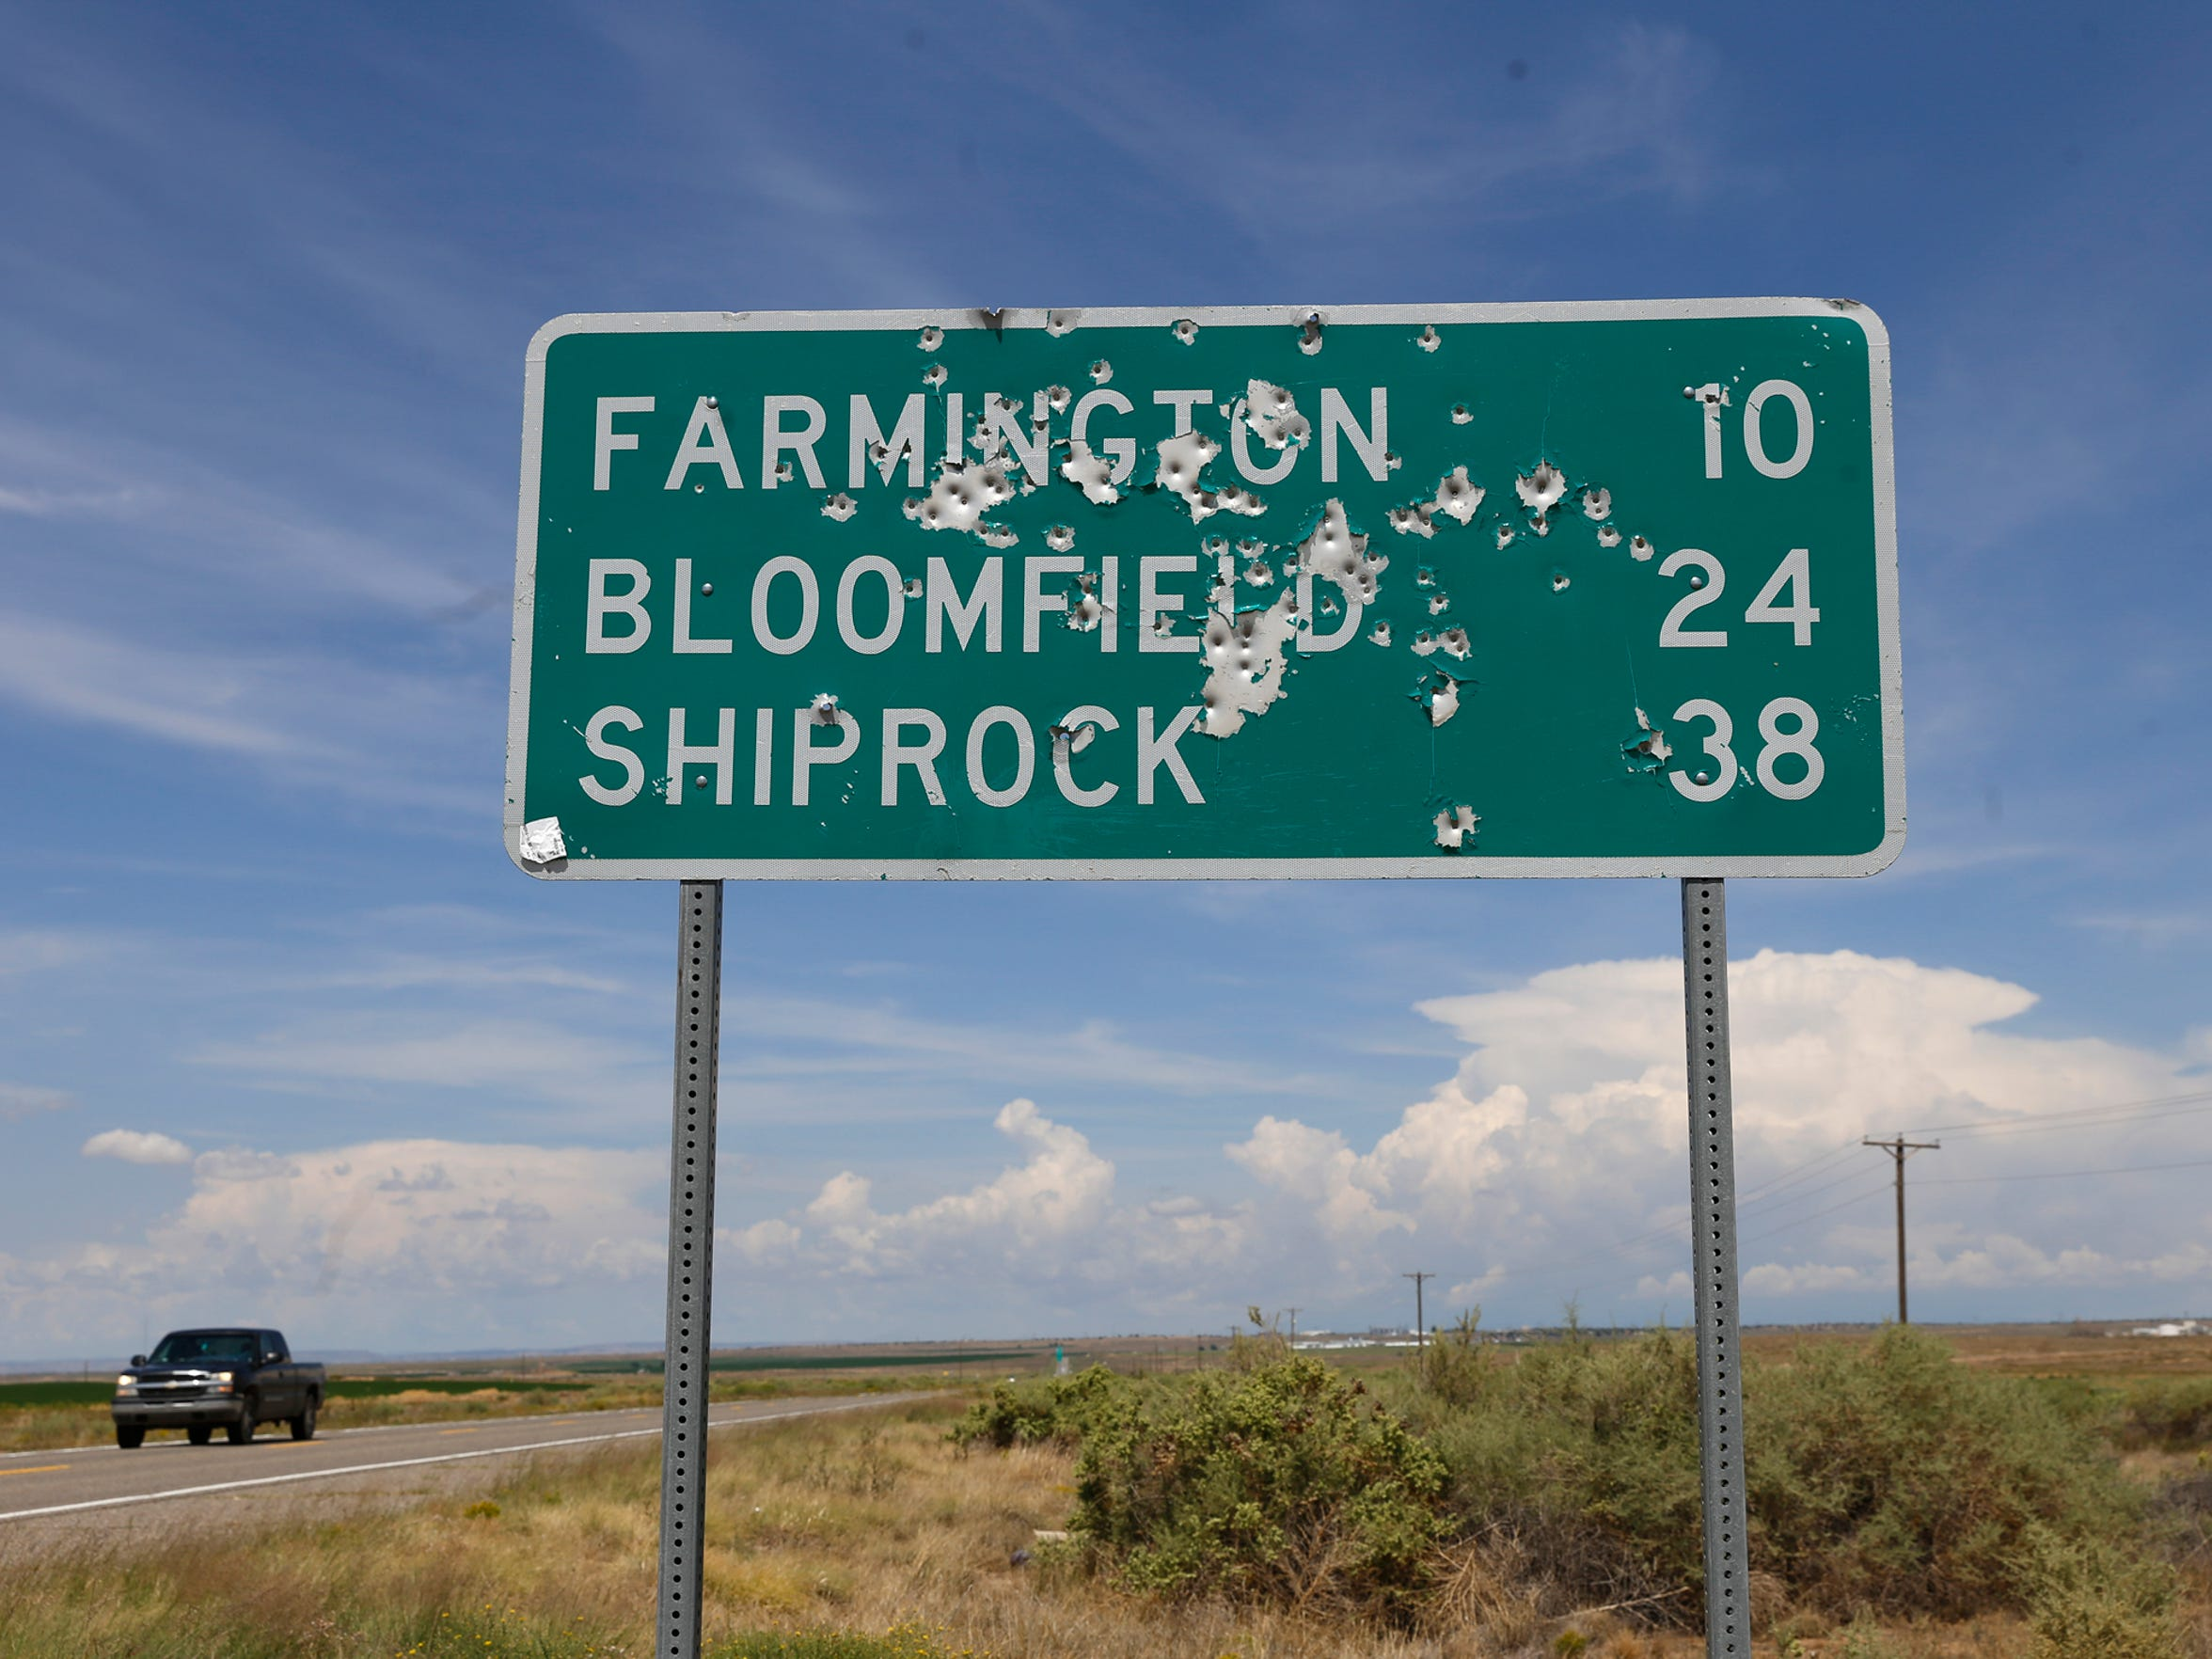 A sign on Wednesday is pictured near the border of the Navajo Nation, near mile marker 96 on U.S. Highway 371 south of Farmington.